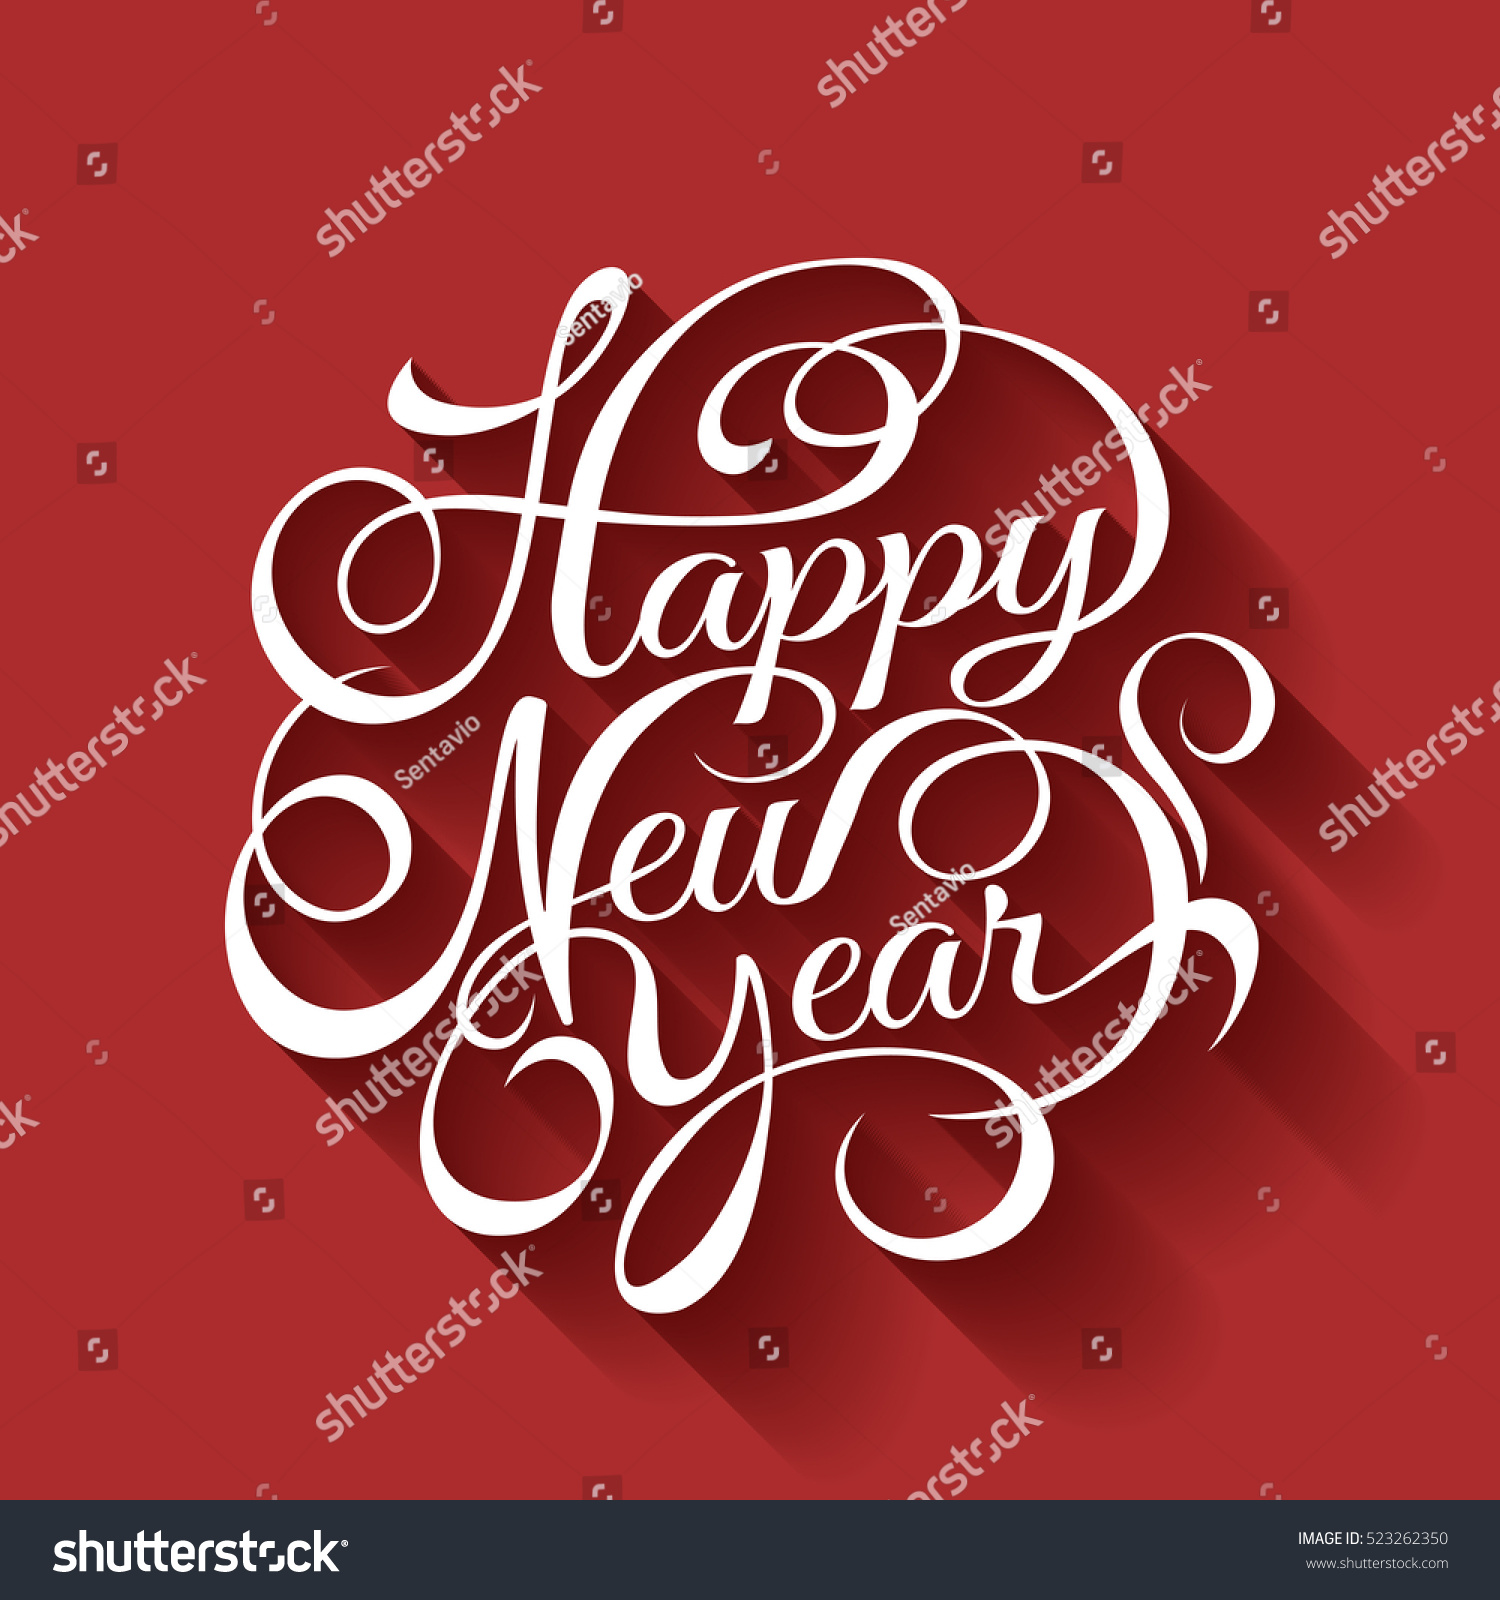 Happy New Year Vector Text Calligraphic Stock Vector